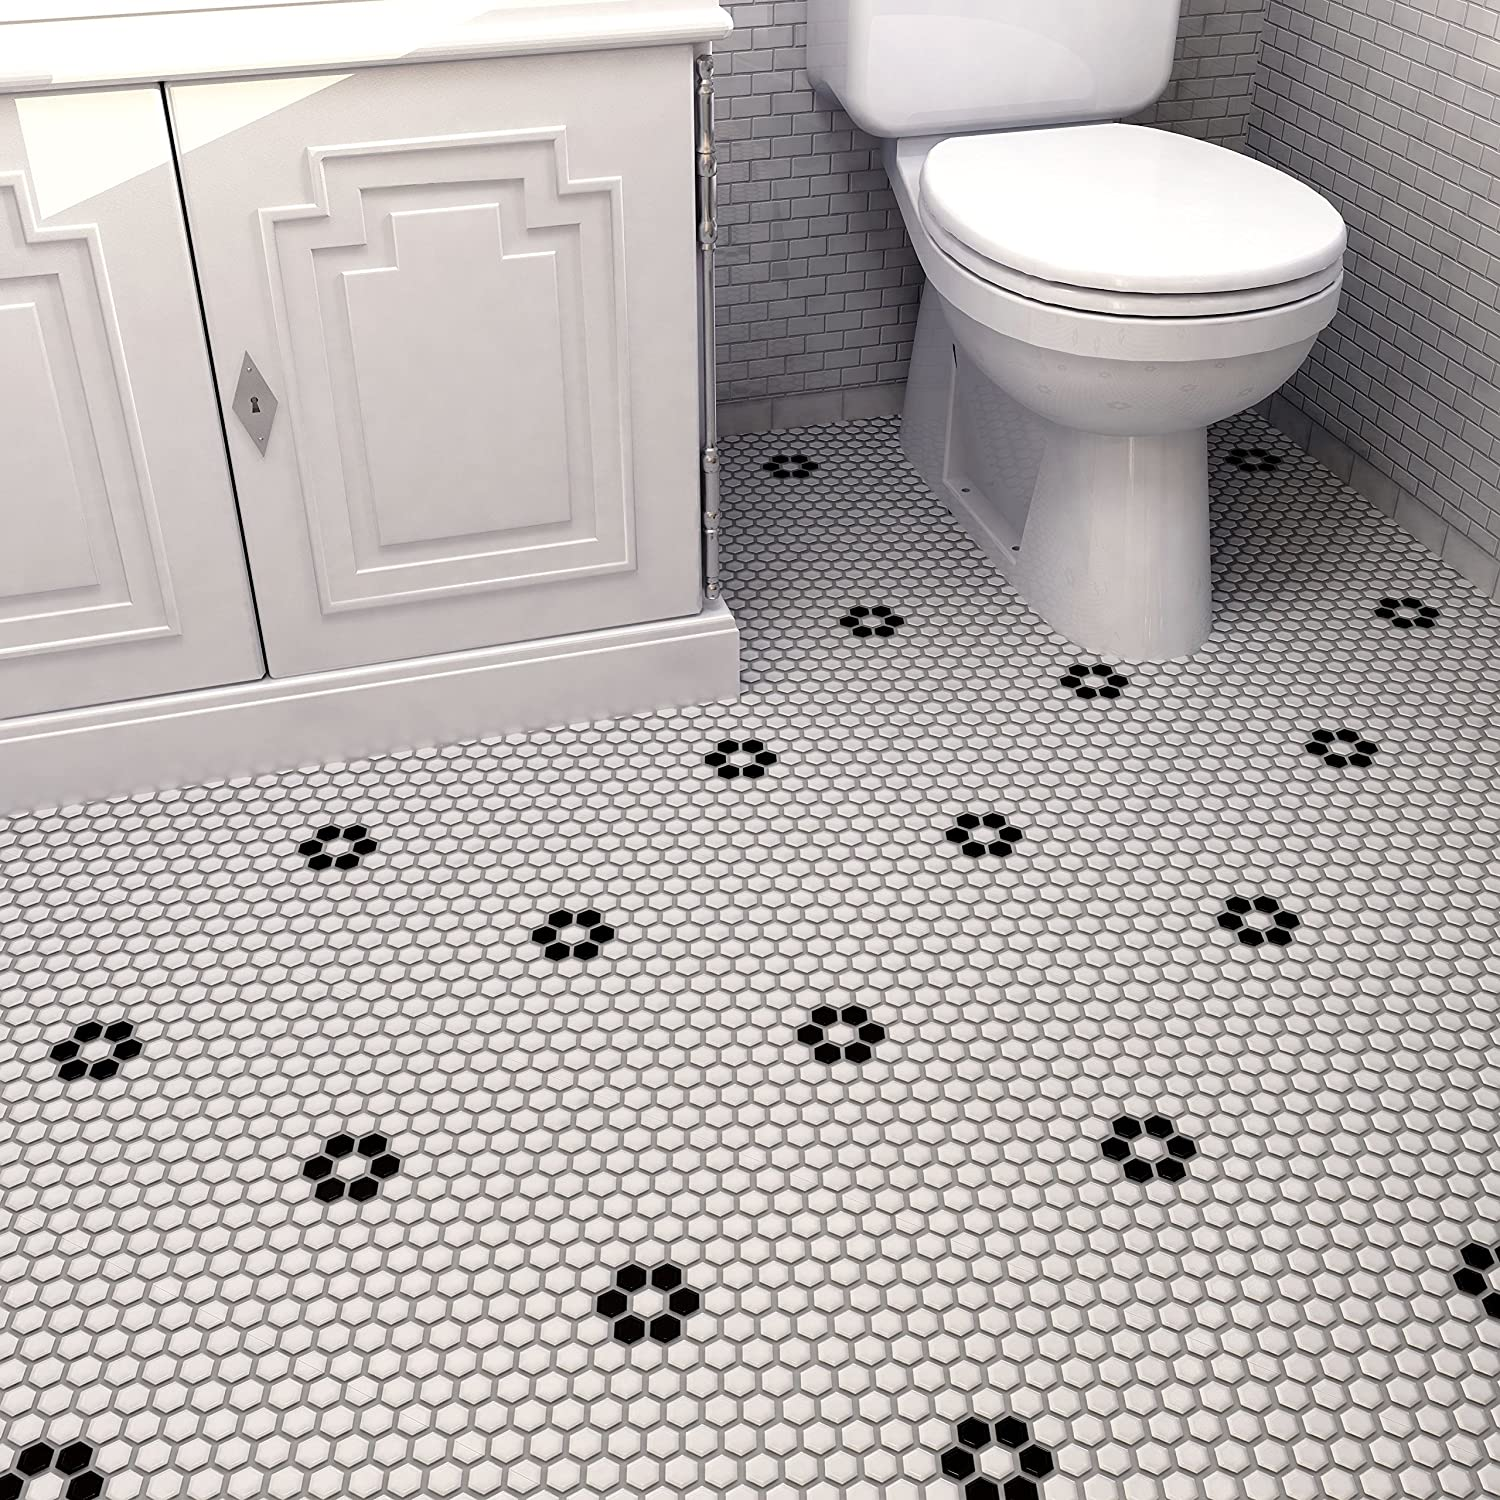 SomerTile FXLM1HMF Retro Hex with Flower Porcelain Floor and Wall ...